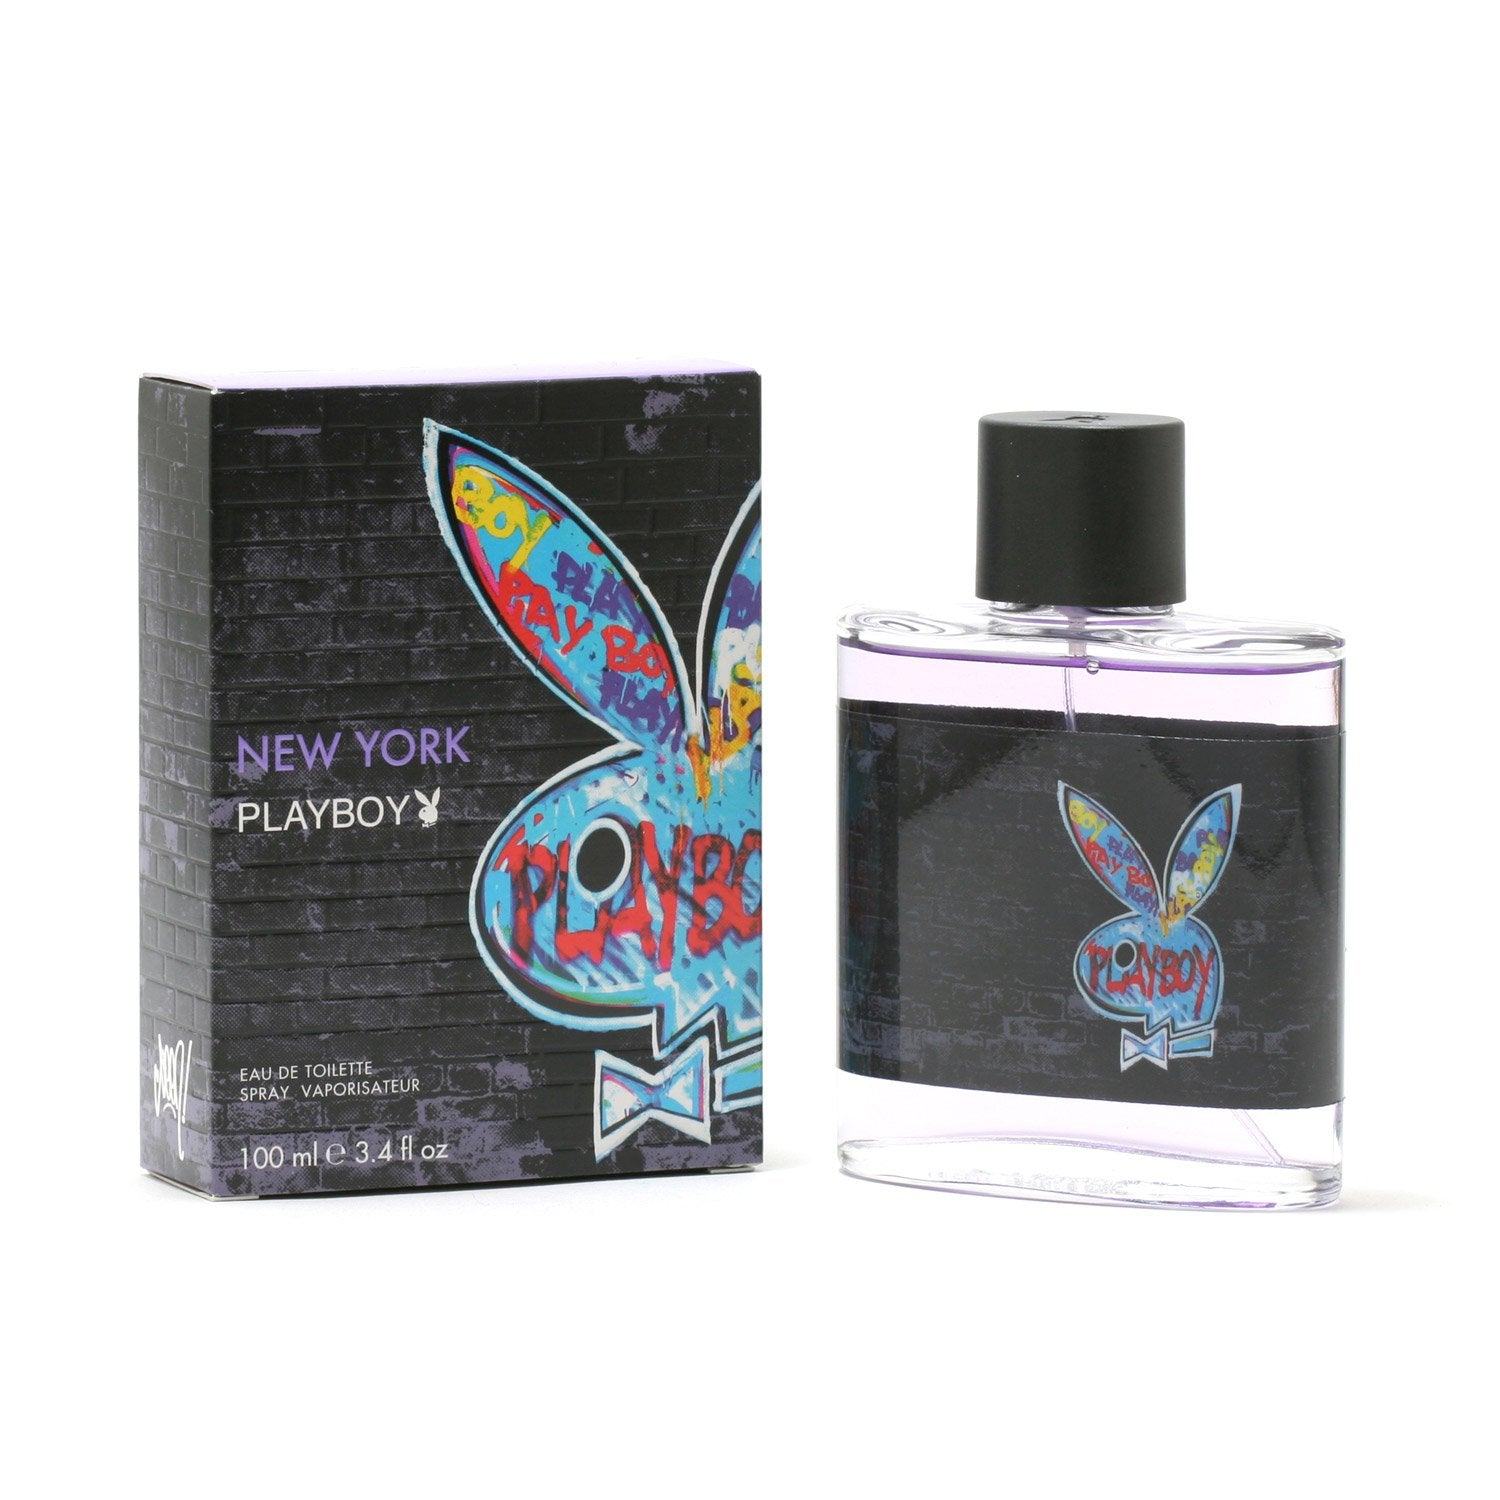 Cologne - PLAYBOY NEW YORK FOR MEN - EAU DE TOILETTE SPRAY, 3.4 OZ